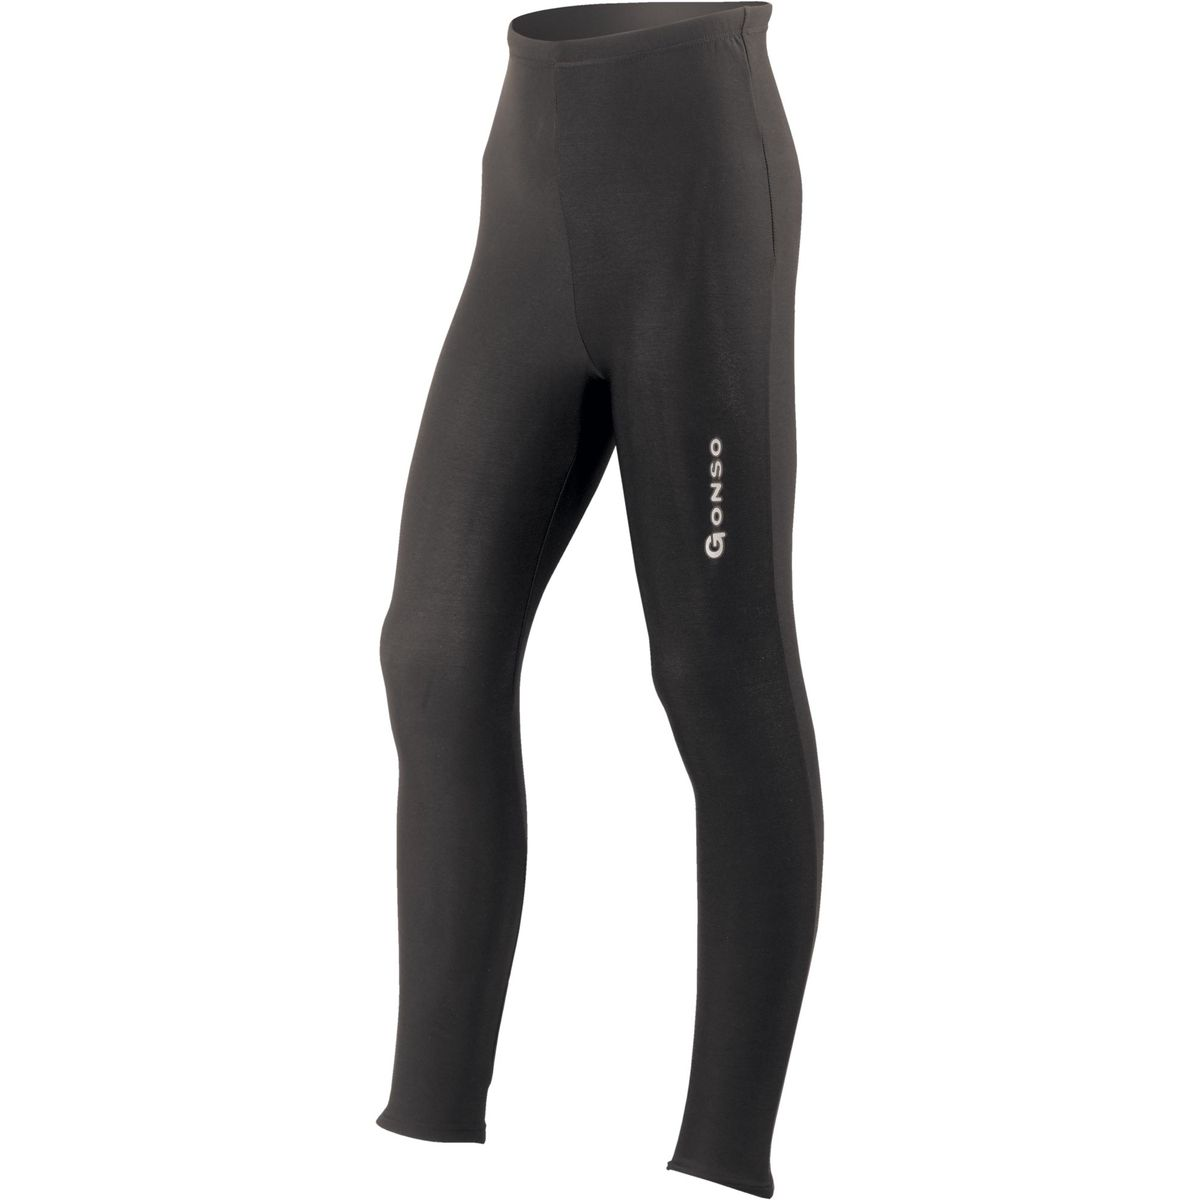 MARC Kinder Thermo Tights